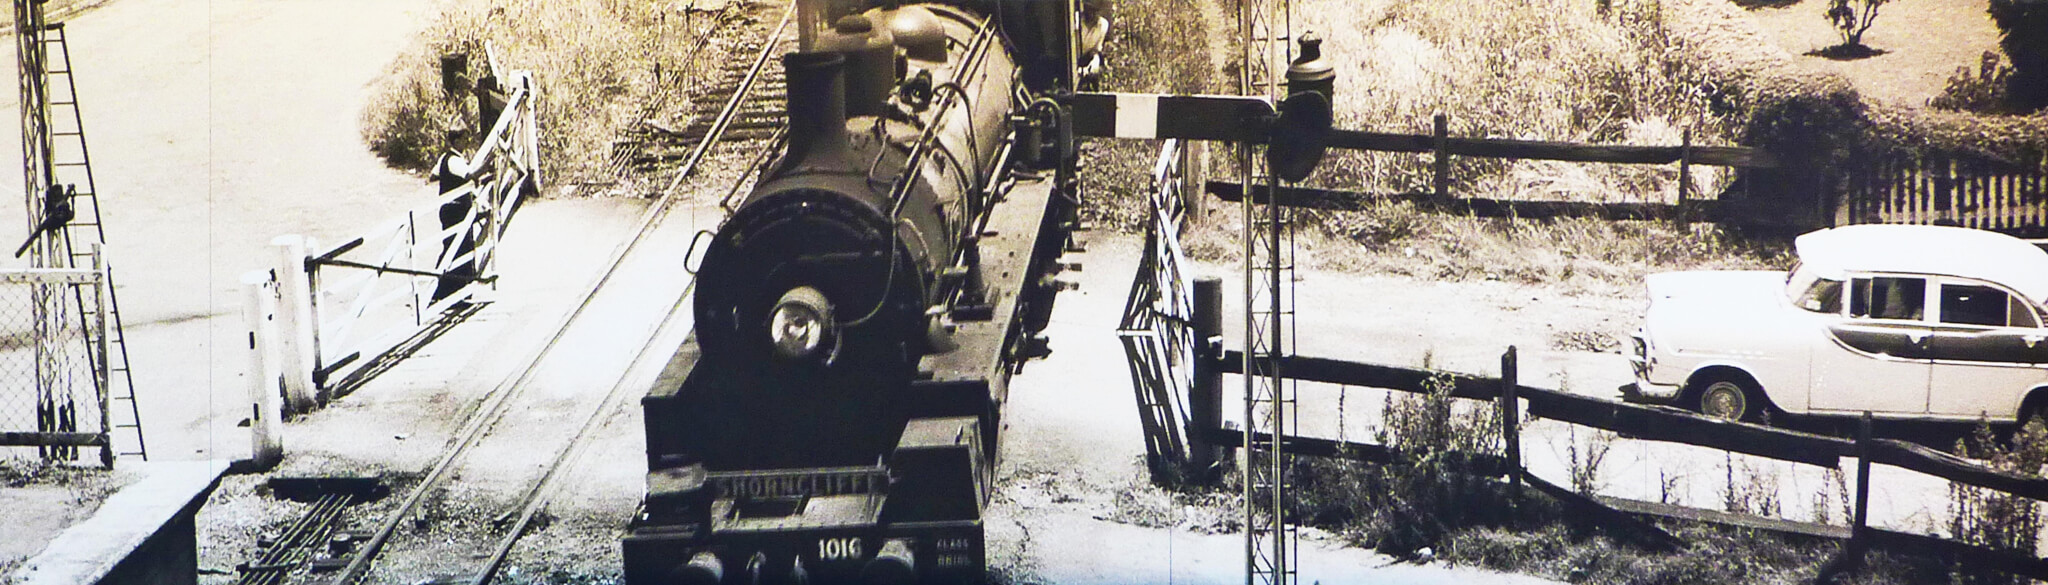 Level crossings have barely changed in a hundred years.